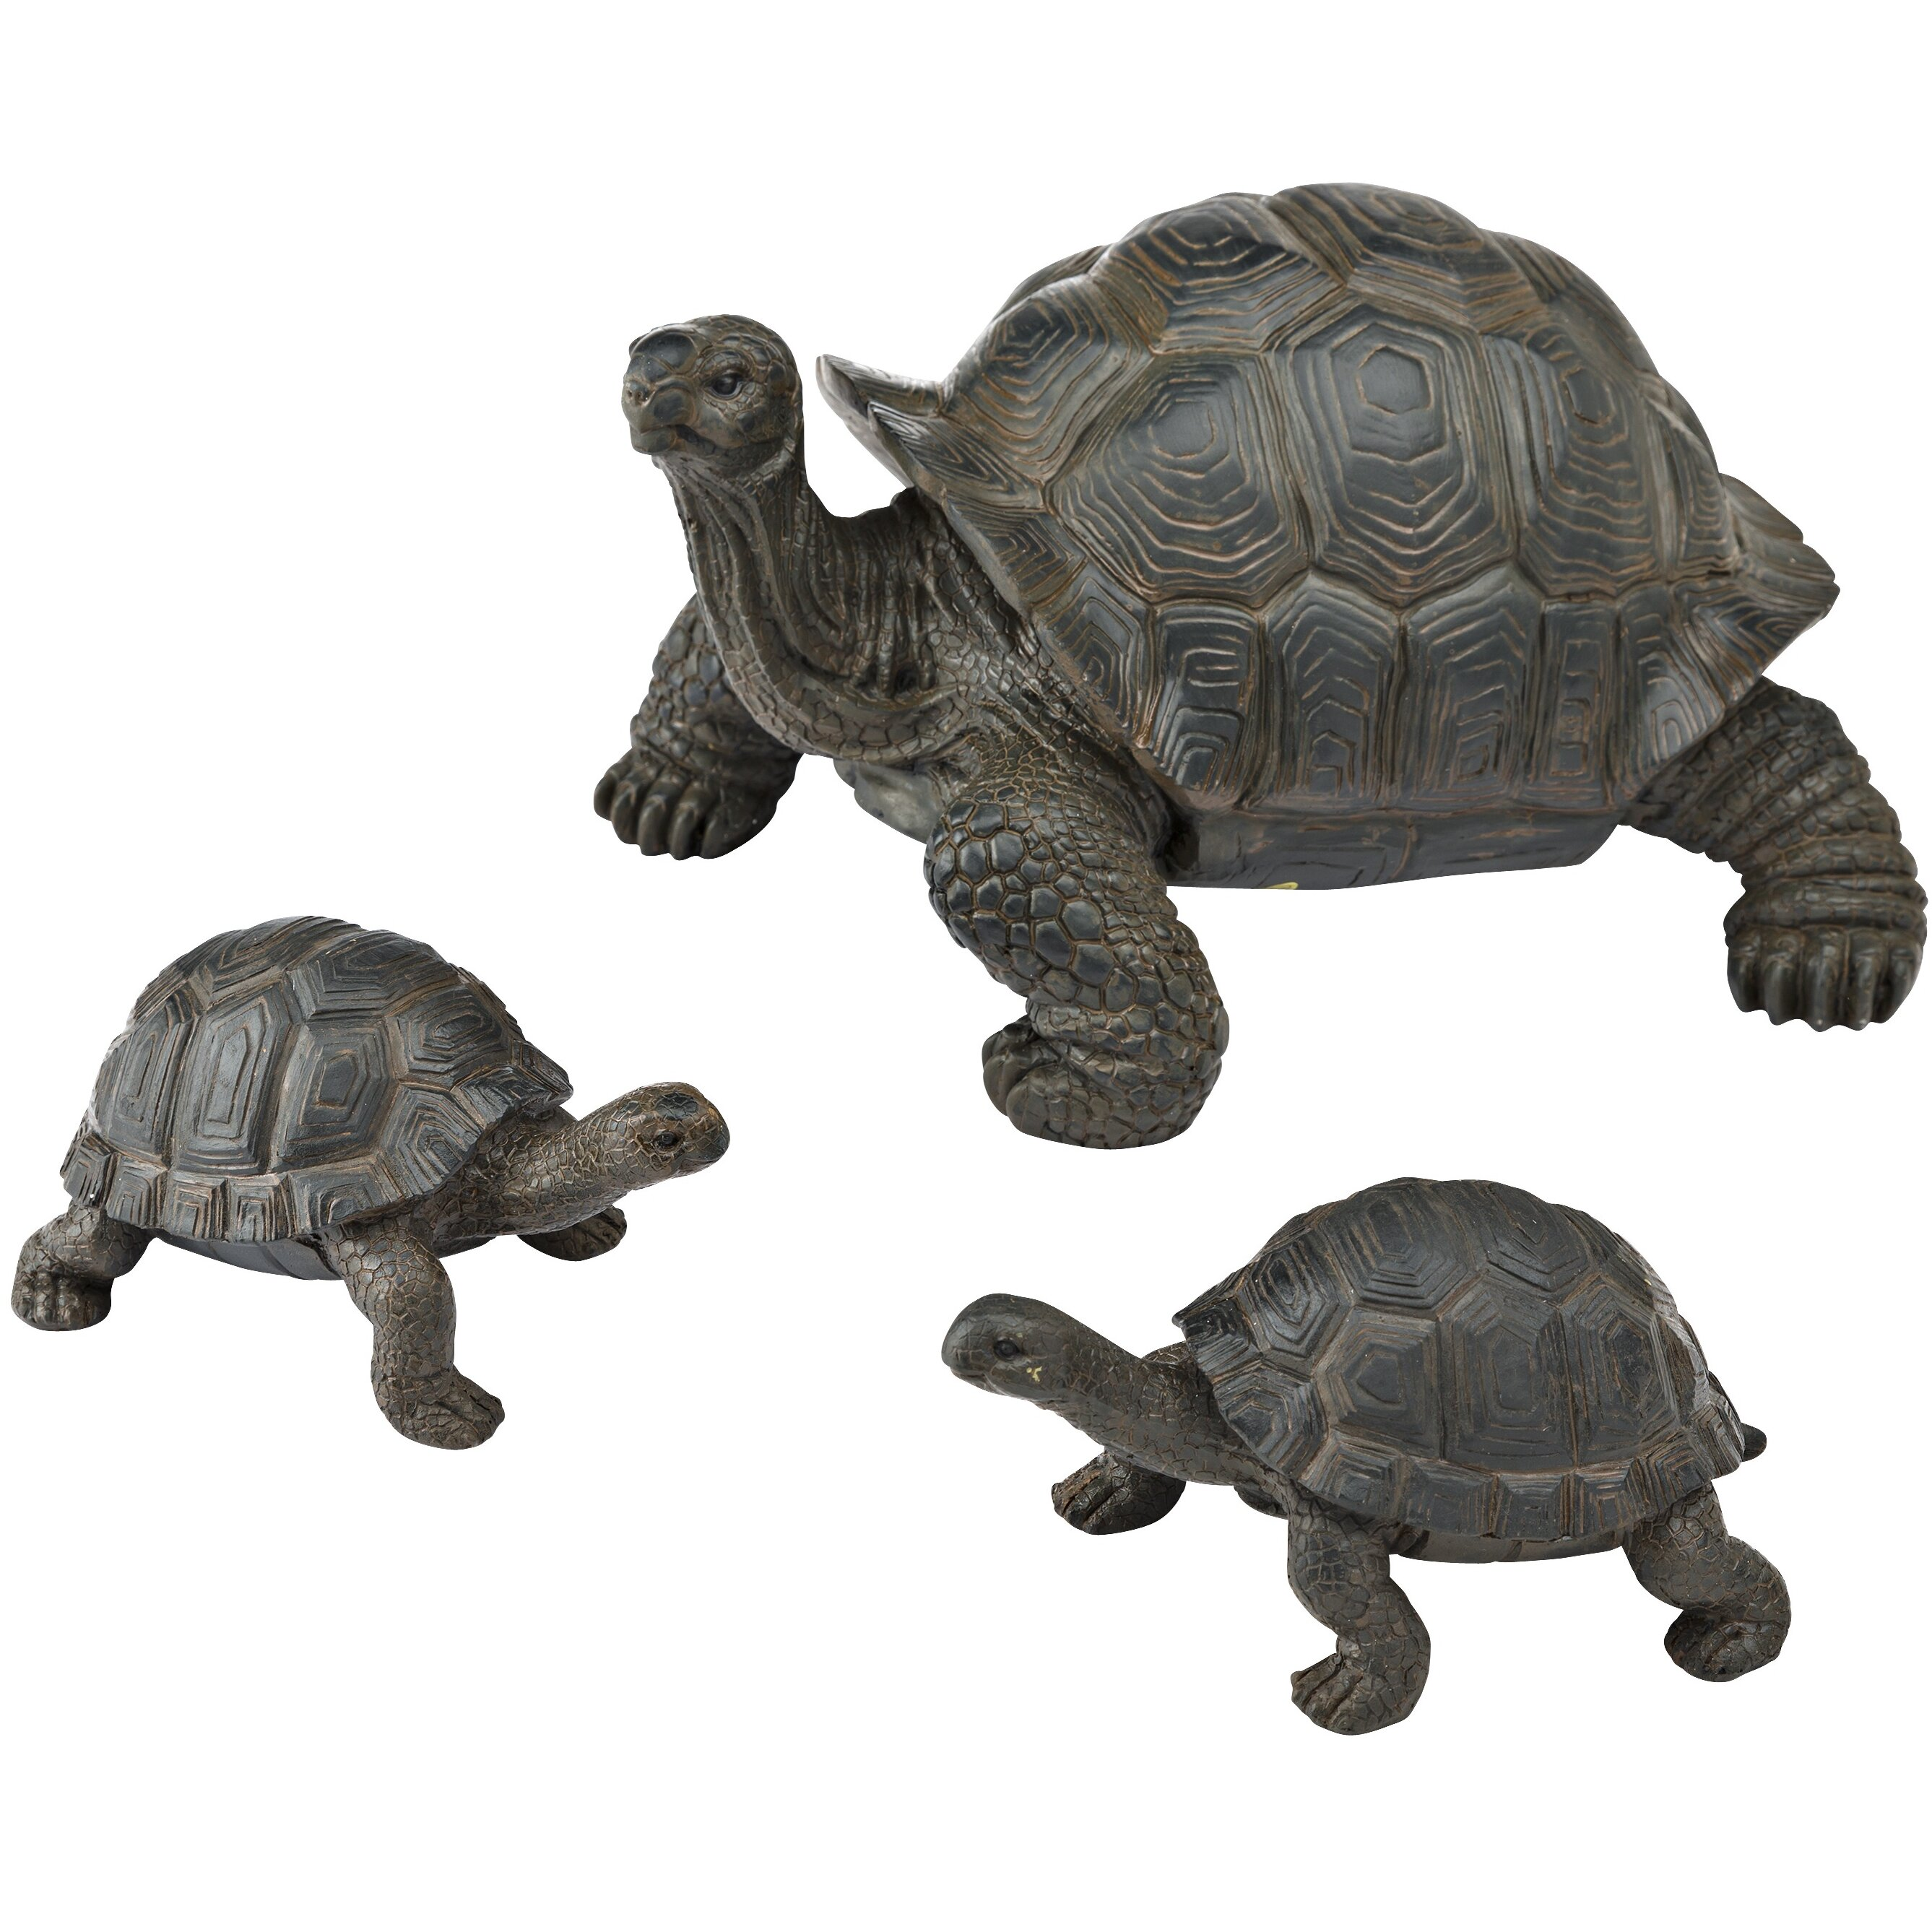 Plow amp Hearth Tortoise Family Resin Garden Accents Statue  : Tortoise Family Resin Garden Accents 53562 from www.wayfair.com size 2675 x 2675 jpeg 840kB